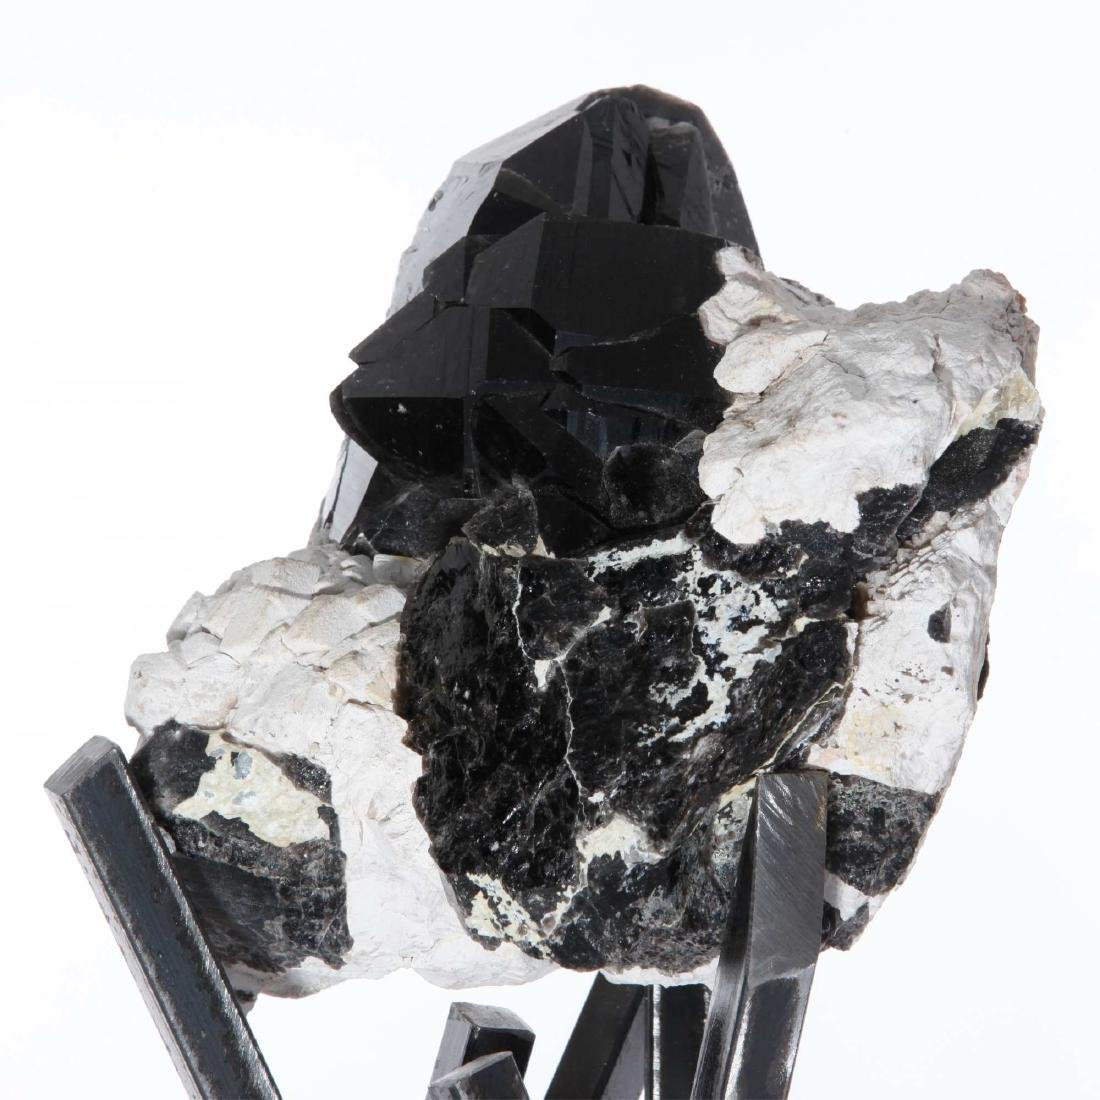 Tibetan Black Quartz Crystal Cluster on Metal Base - 6